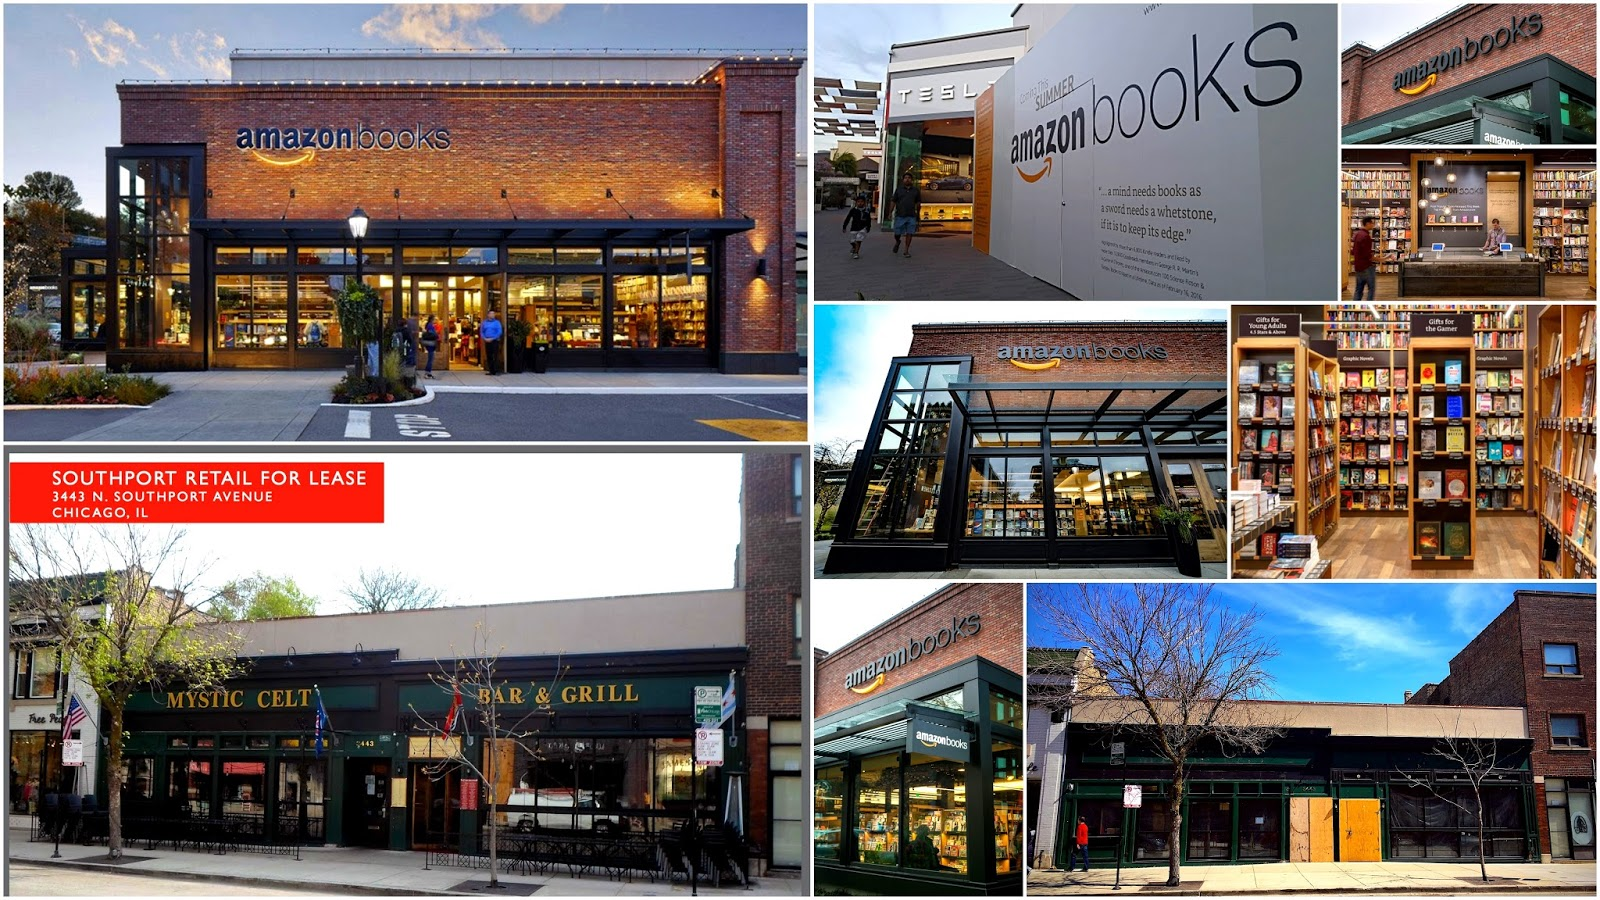 Amazon Books rumored to be coming to Southport'